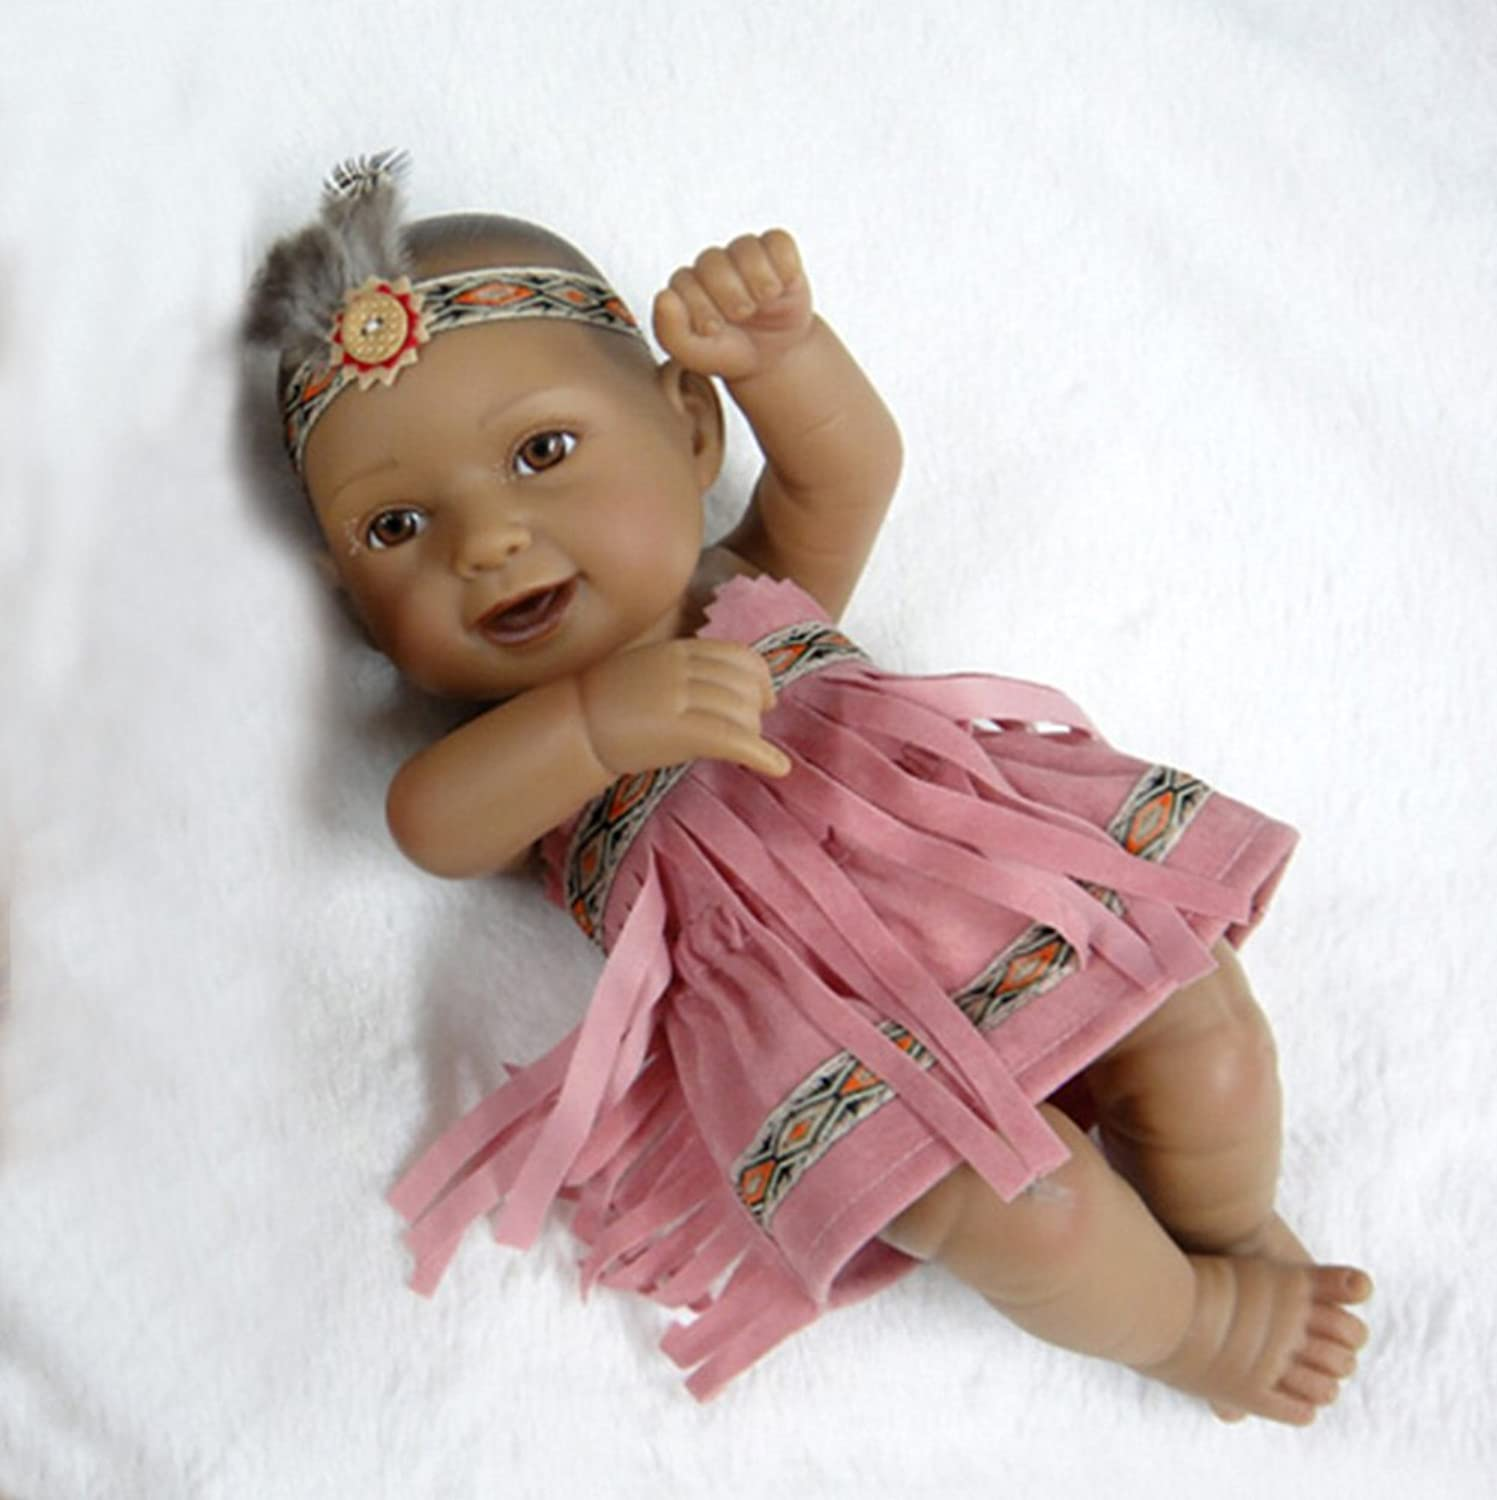 TERABITHIA Mini 11  Alive Newborn Baby Dolls Collectible Native American Indian Girl